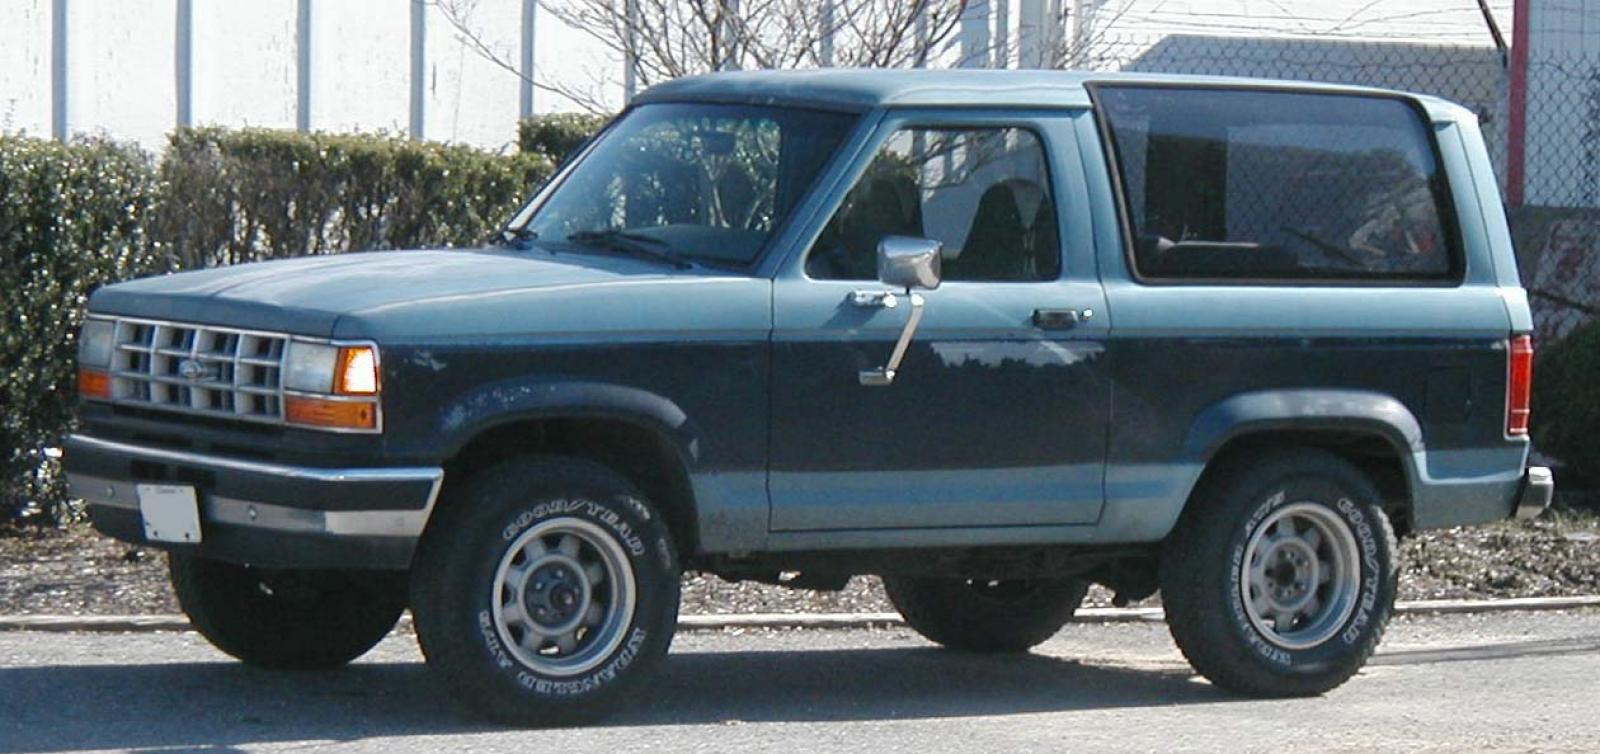 1990 Ford Bronco Ii 1600px Image 5